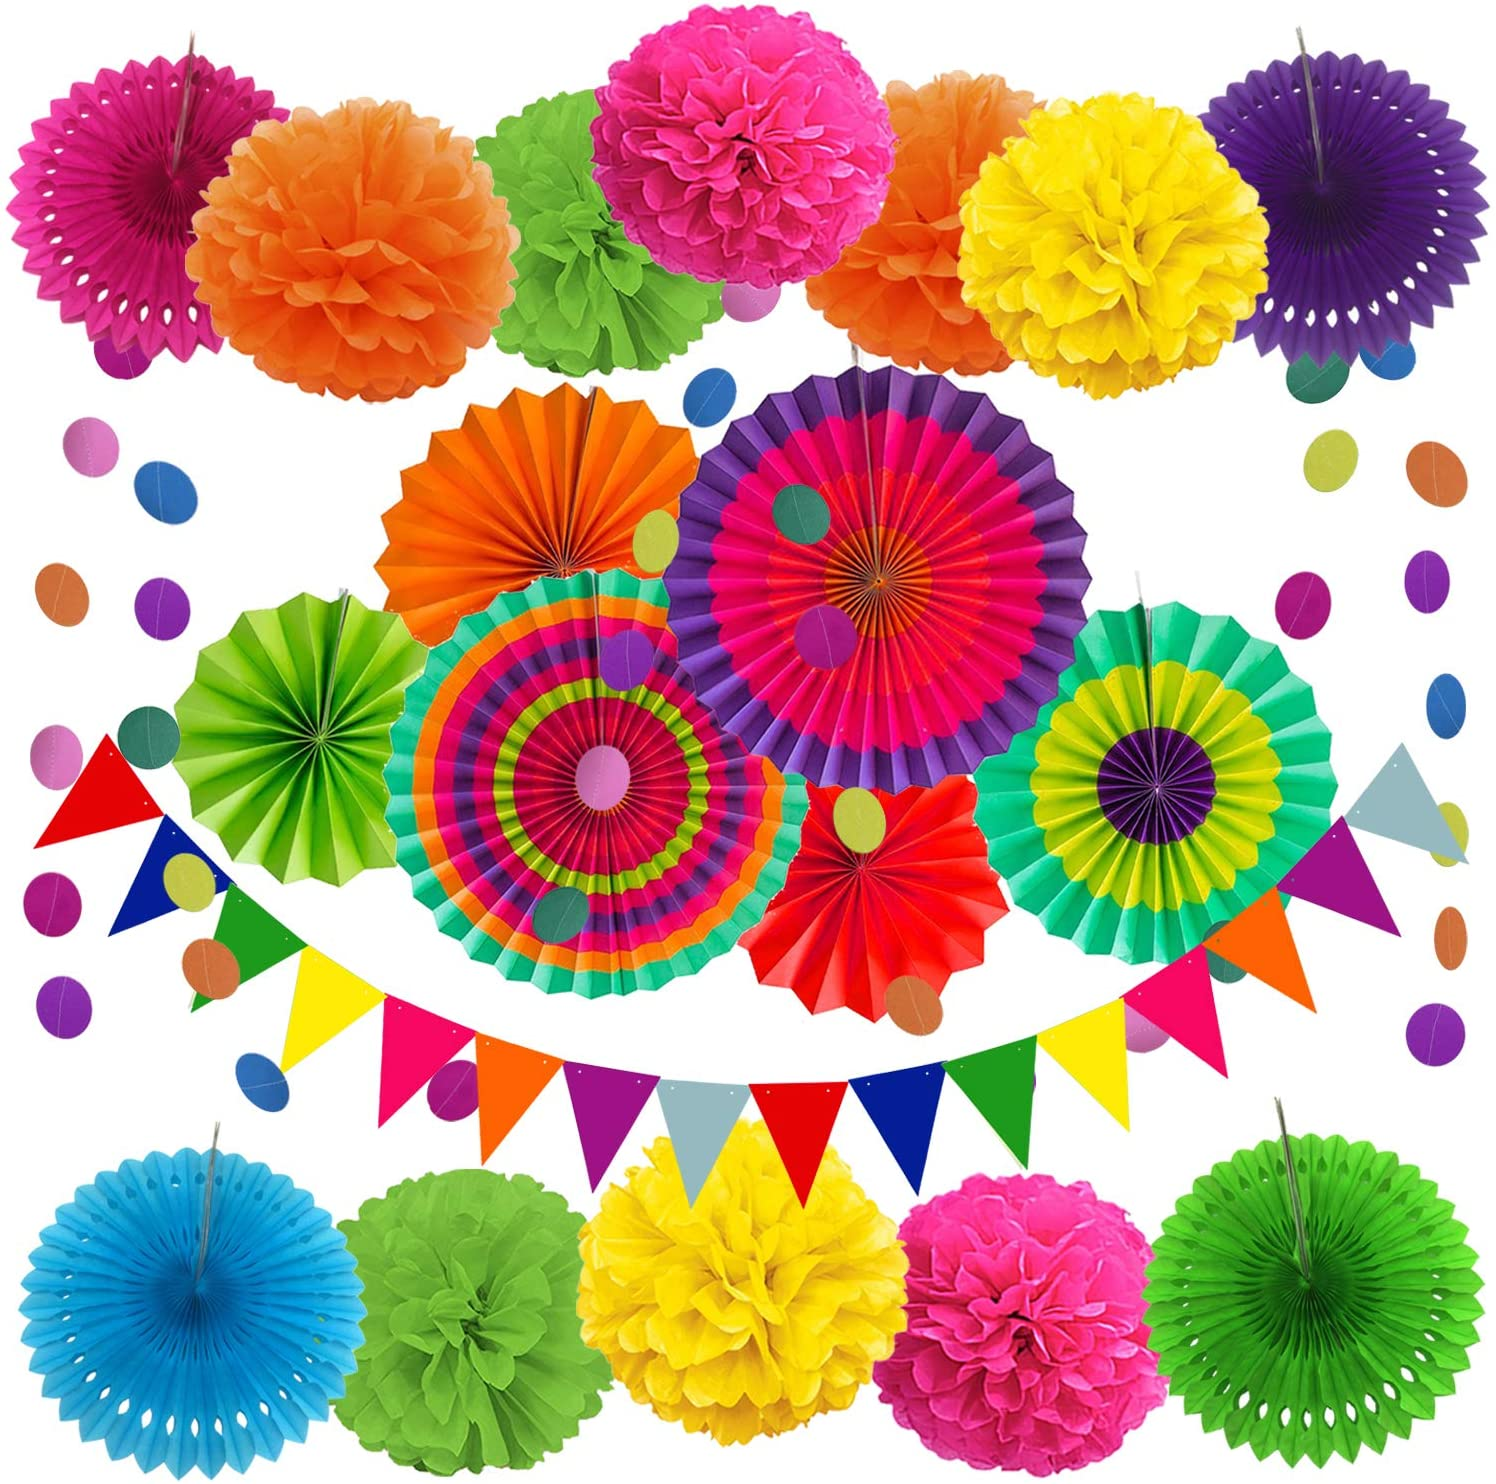 ZERODECO Party Decoration, 21 Pcs Multi-color Hanging Paper Fans, Pom Poms Flowers, Garlands String Polka Dot and Triangle Bunting Flags for Birthday Parties, Wedding Décor, Fiesta or Mexican Party